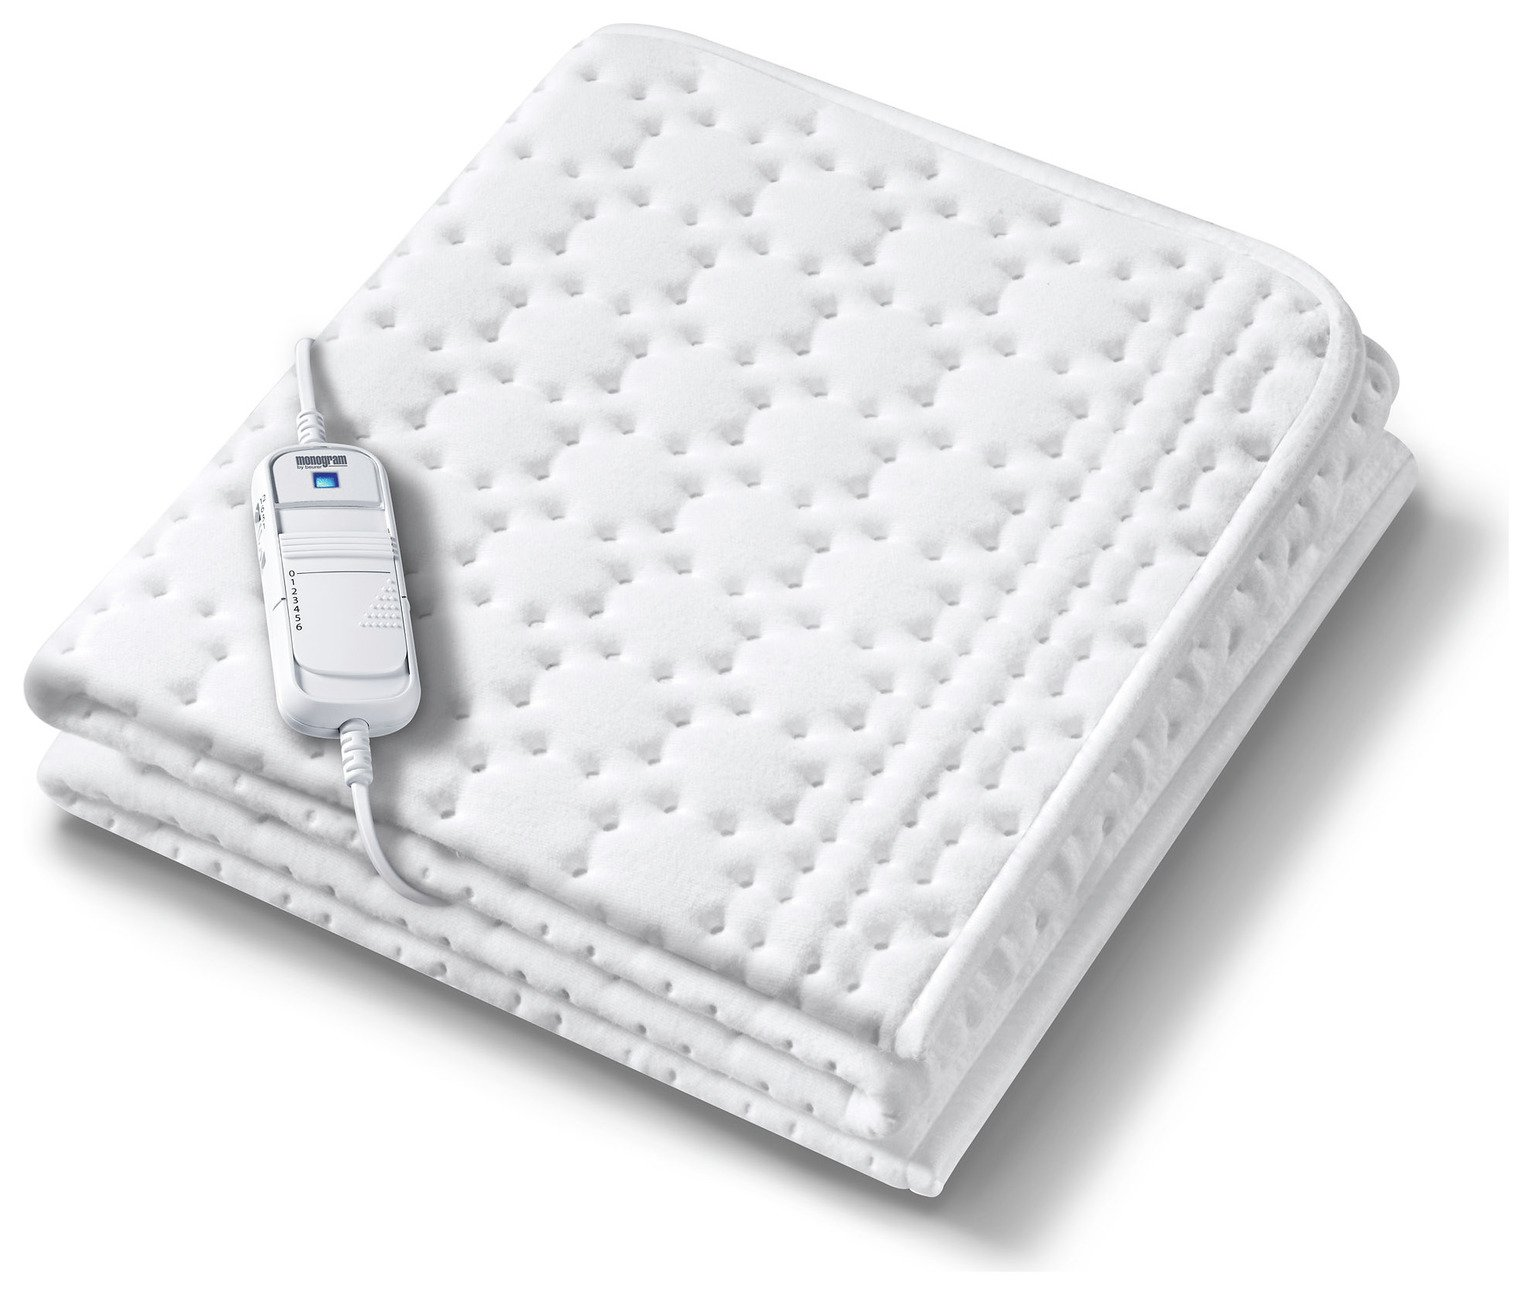 Image of Beurer Allergyfree Heated Blanket - Single